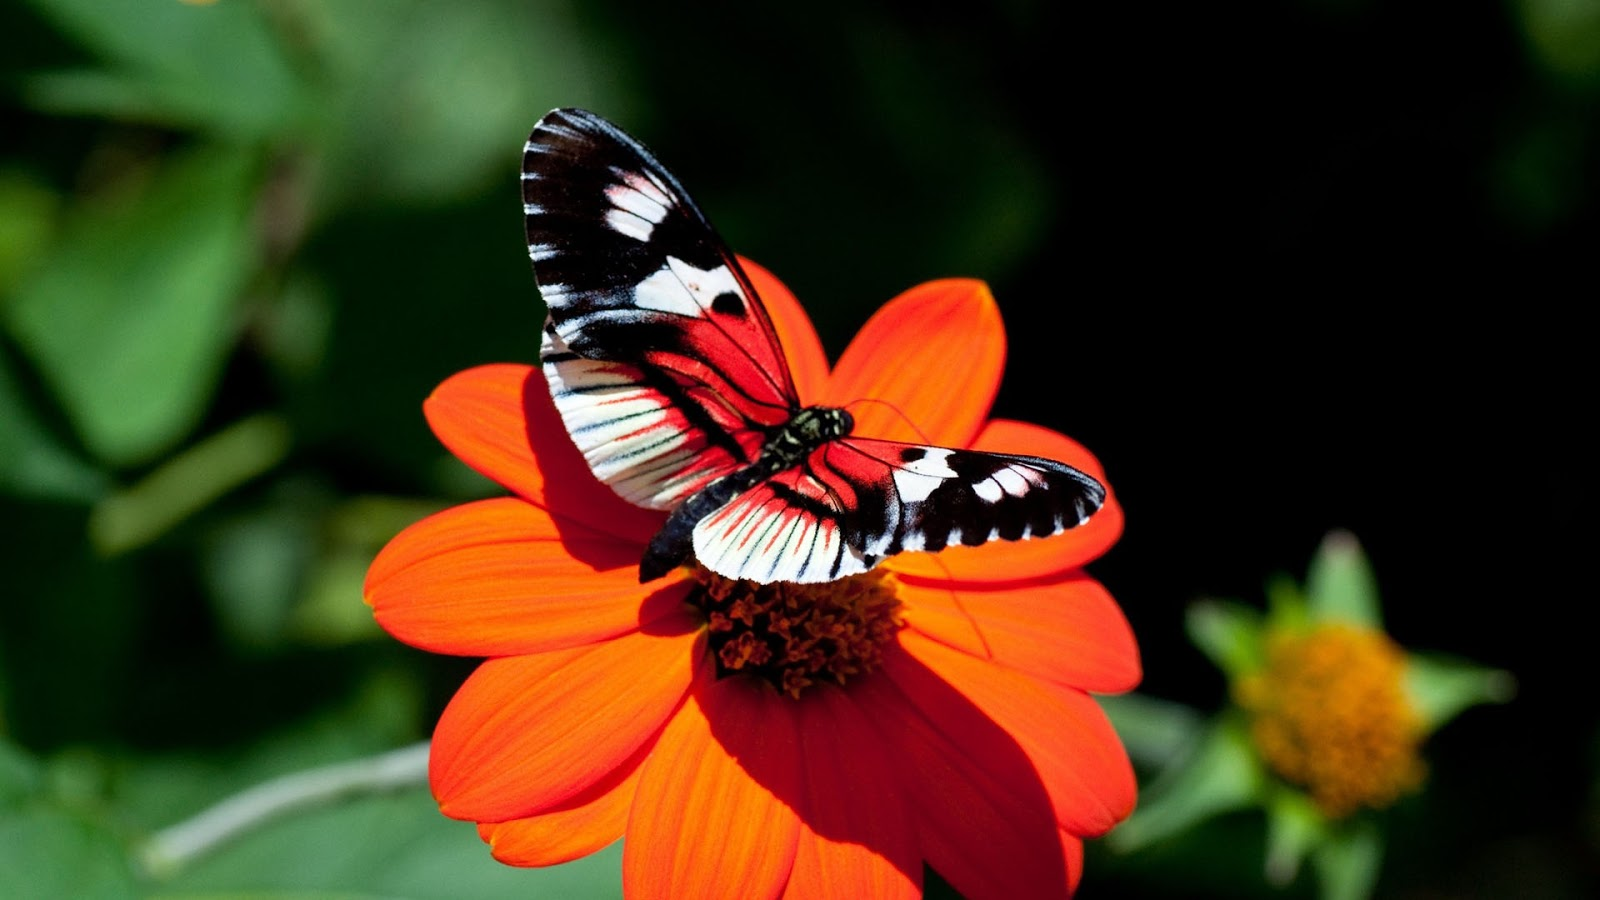 Beautiful Pictures Of Flowers And Butterflies Birds No Comments